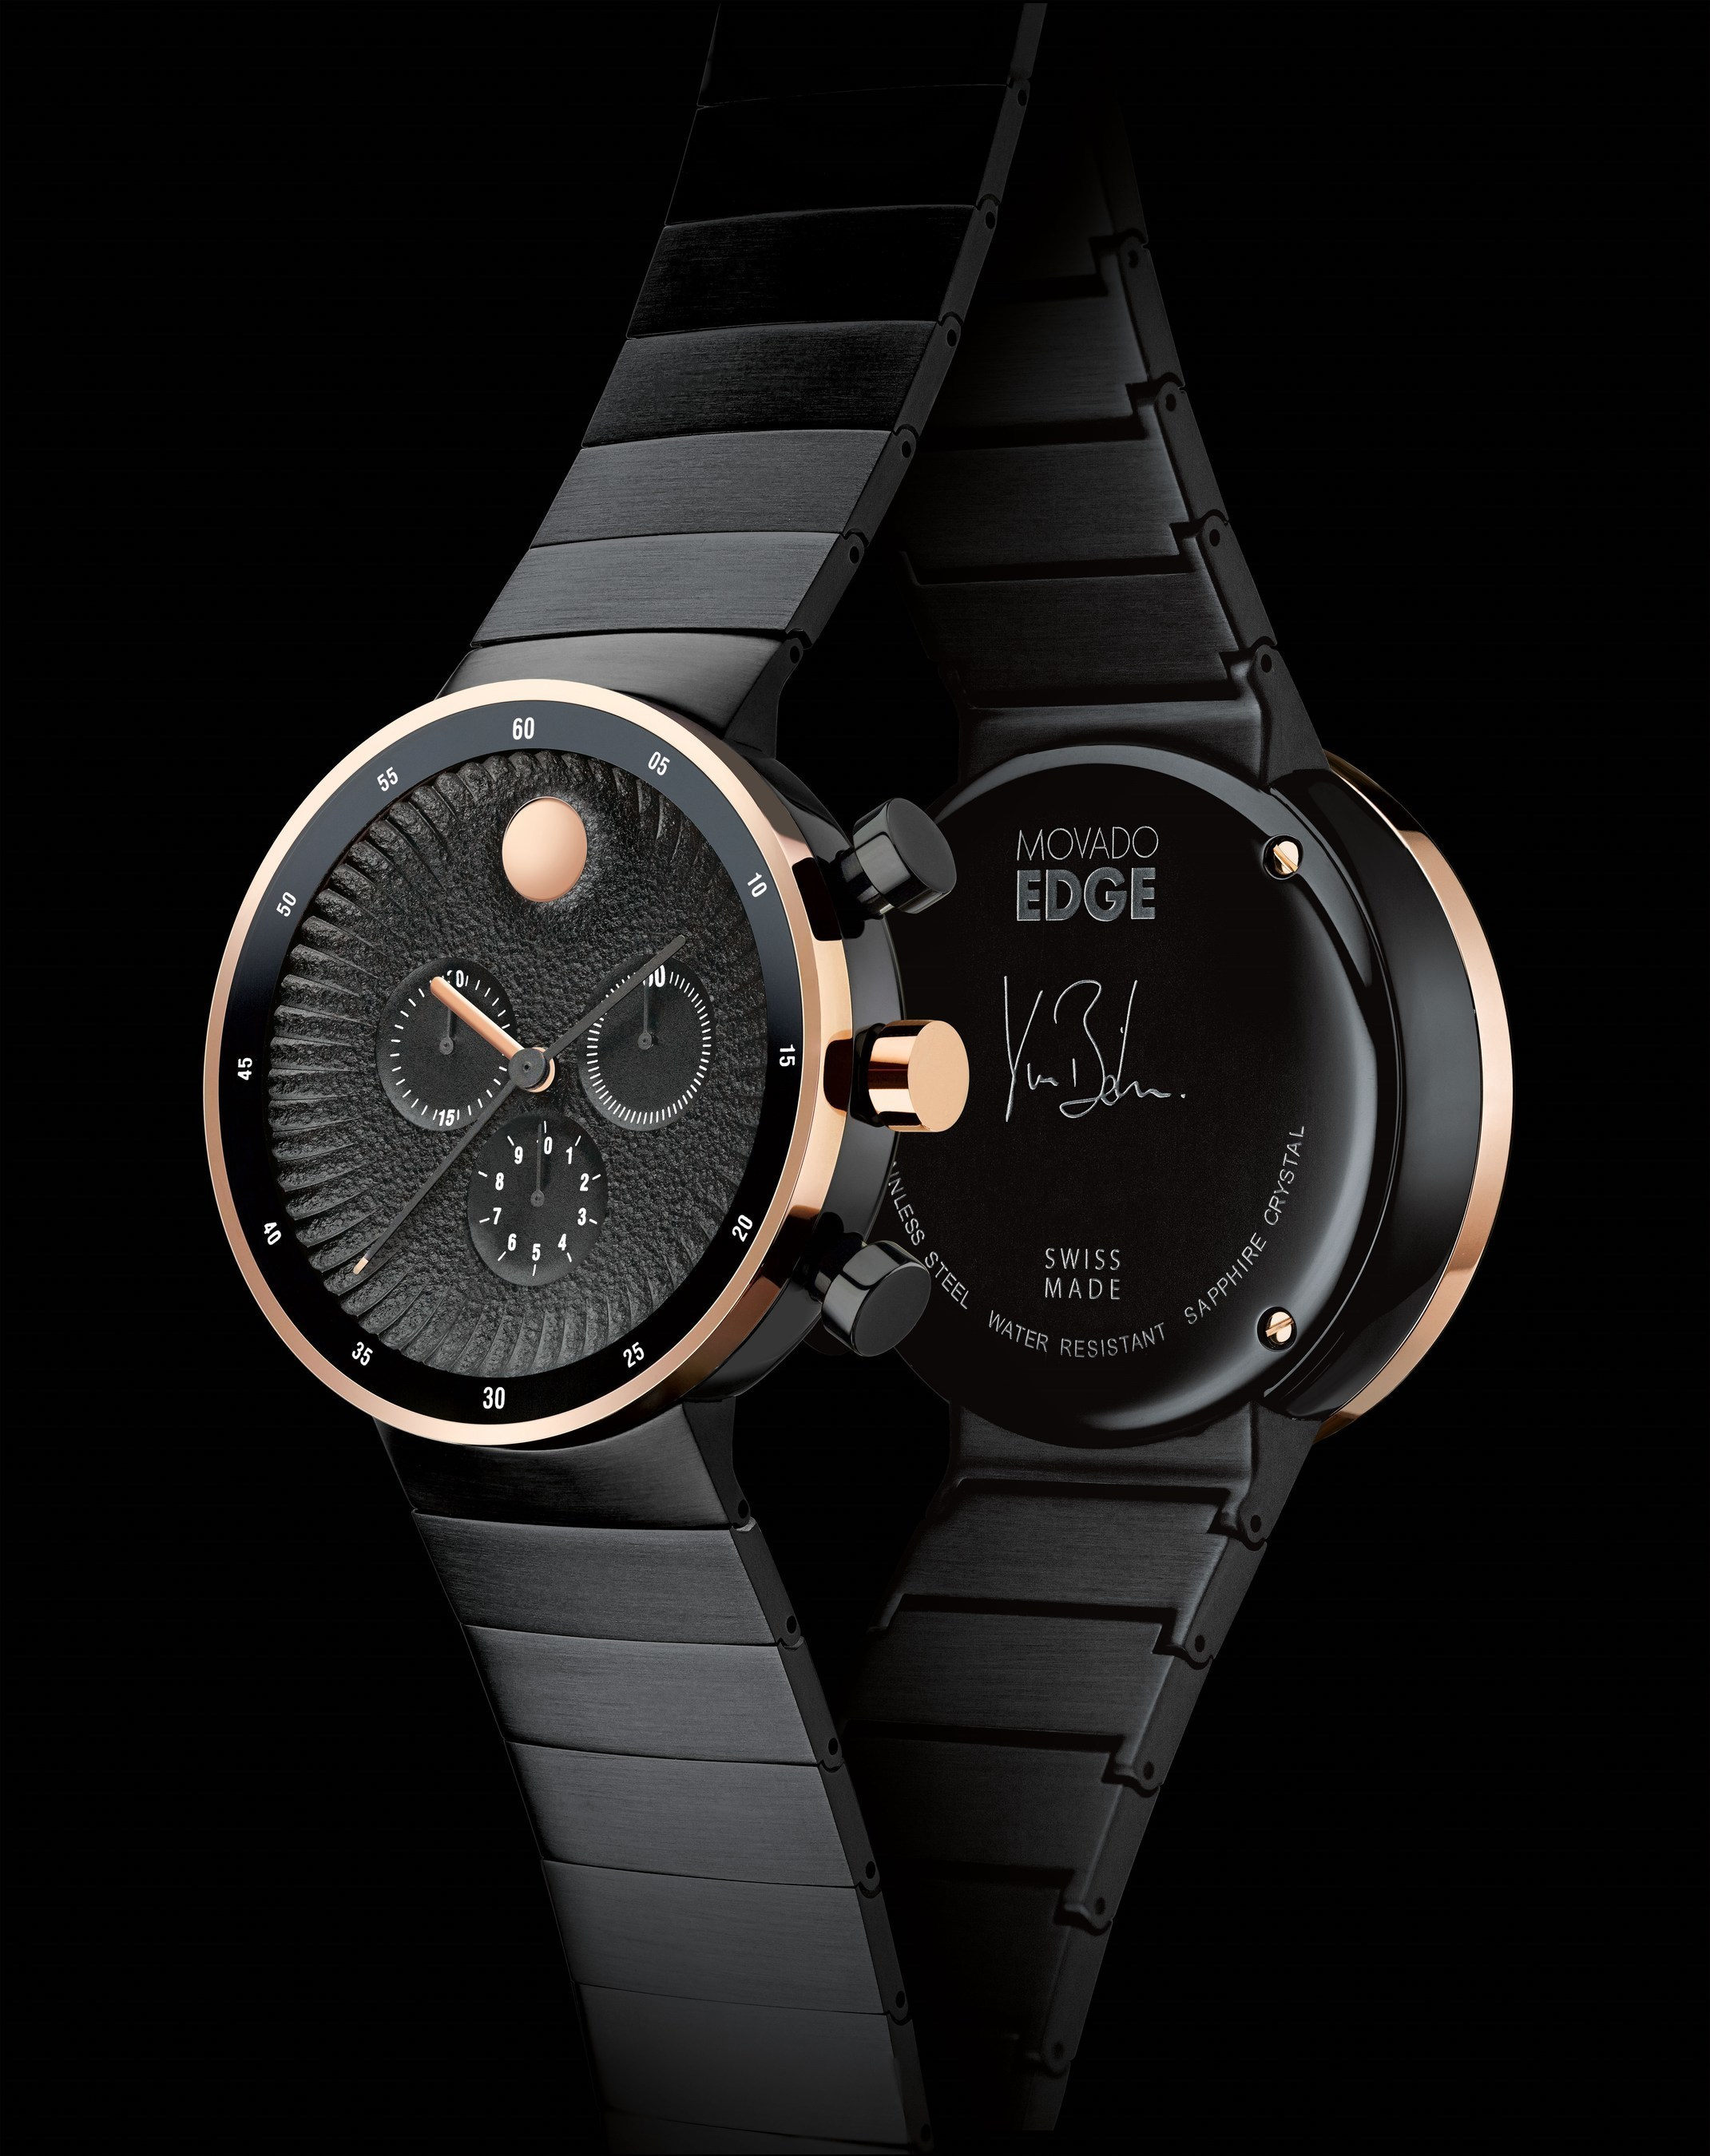 5a7ef4c4d ... to the legendary Museum Dial, created in 1947 by artist/design Nathan  George Horwitt, the Movado Edge collection premiered in 2015 to critical  acclaim.